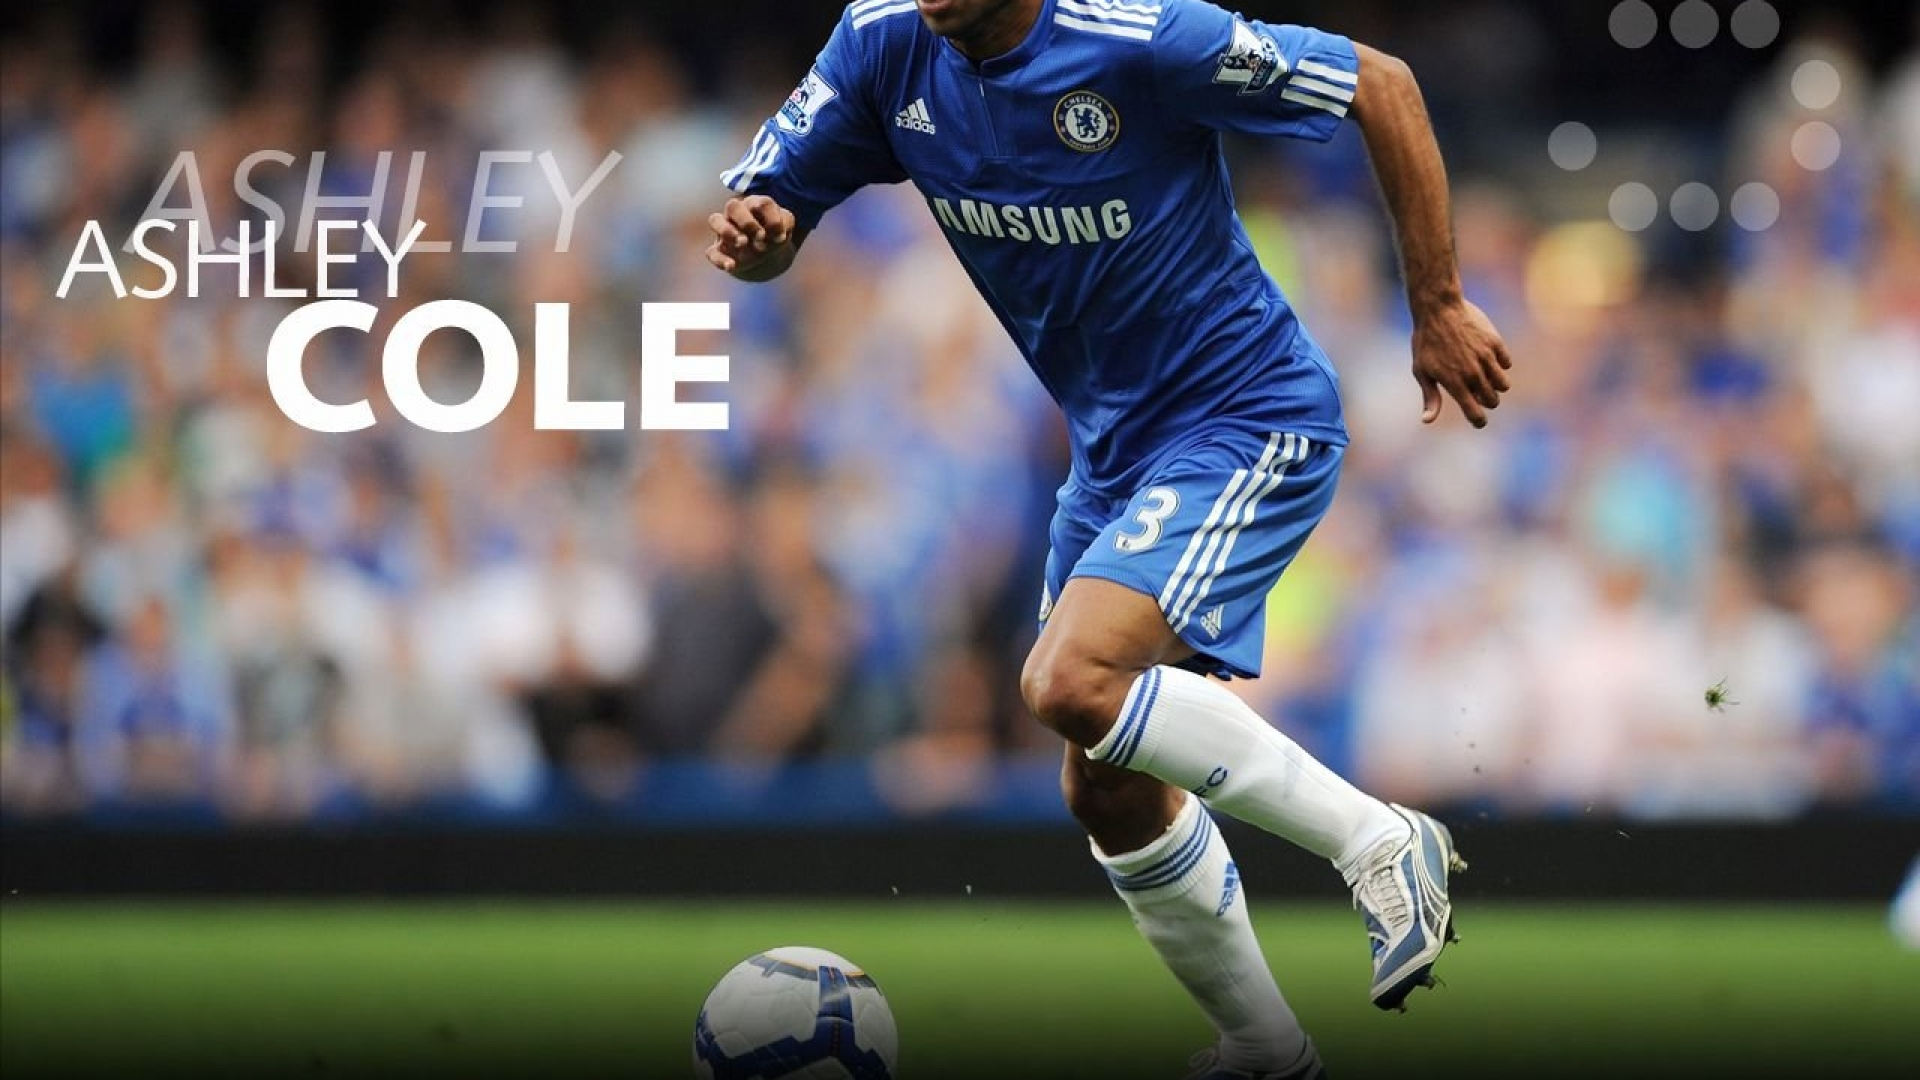 Ashley Cole Wallpaper HD Wallpapers